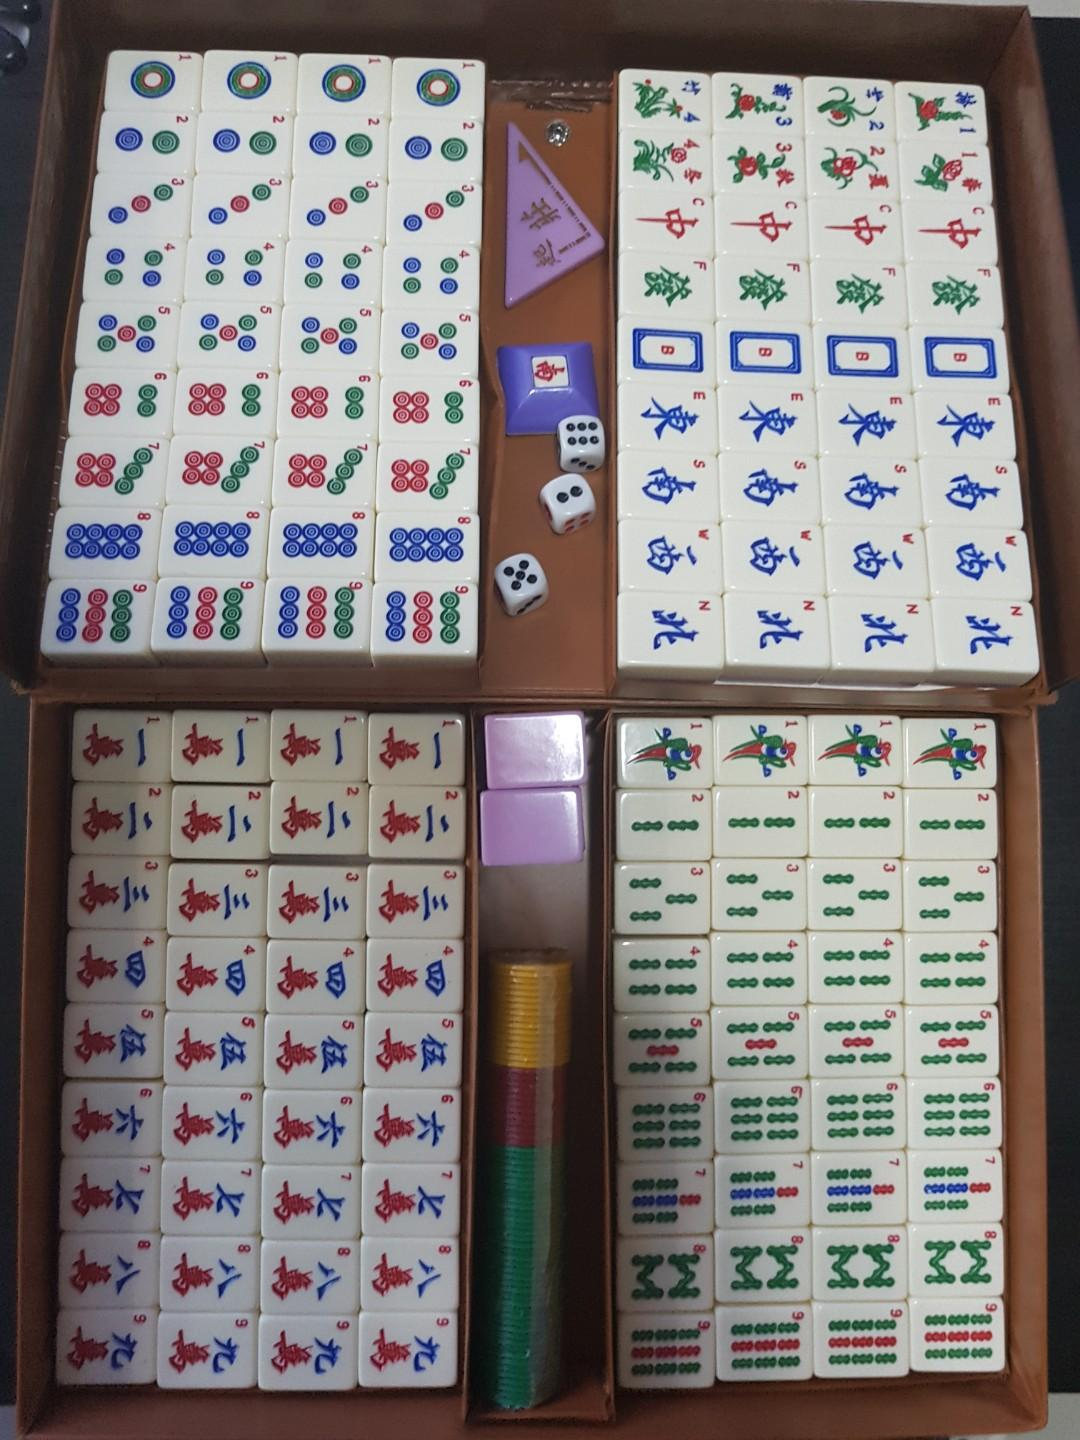 Mahjong Set, Toys & Games, Others on Carousell